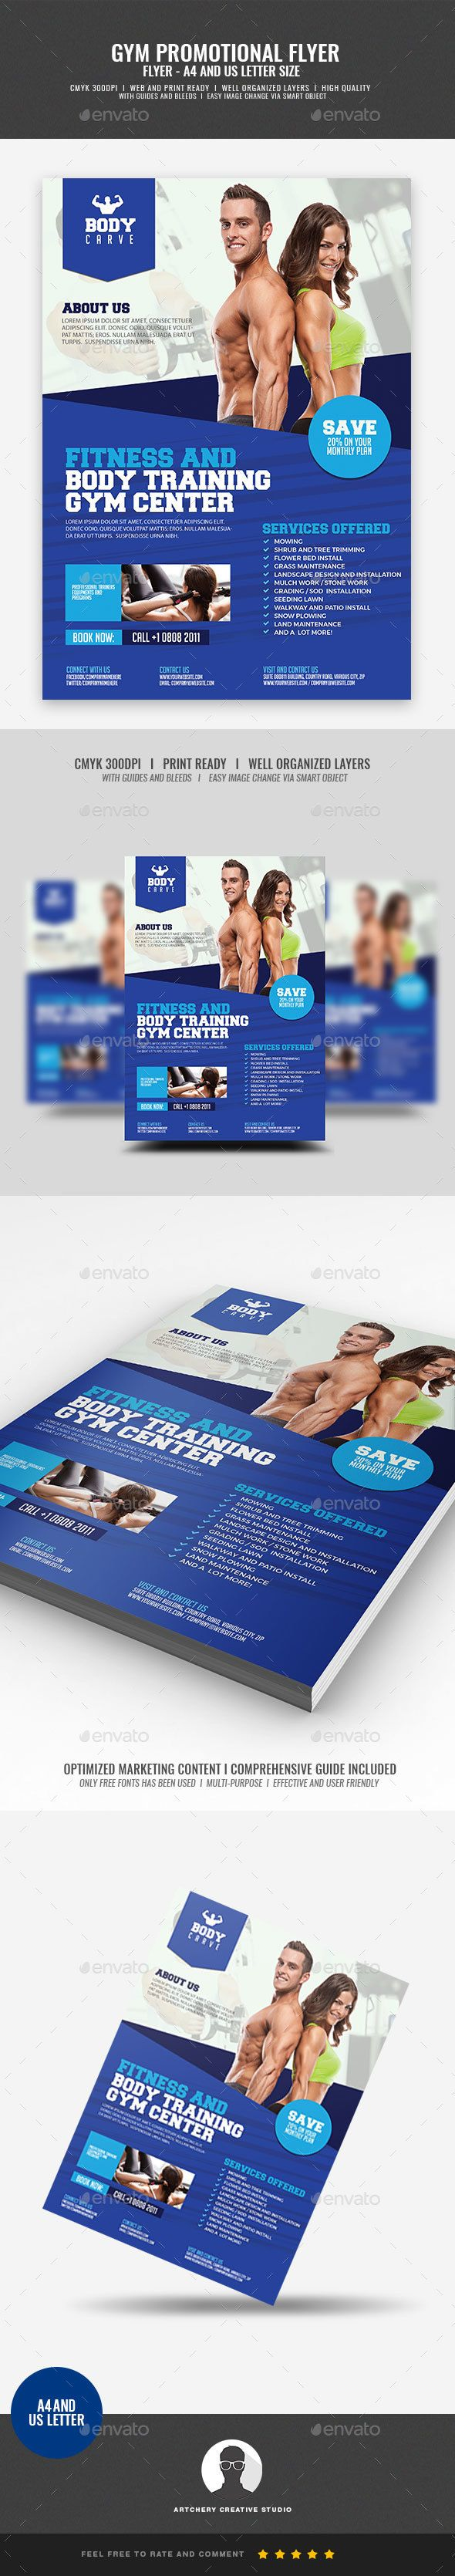 Gym Fitness Promotional Flyer   Promotional flyers, Gym fitness and ...